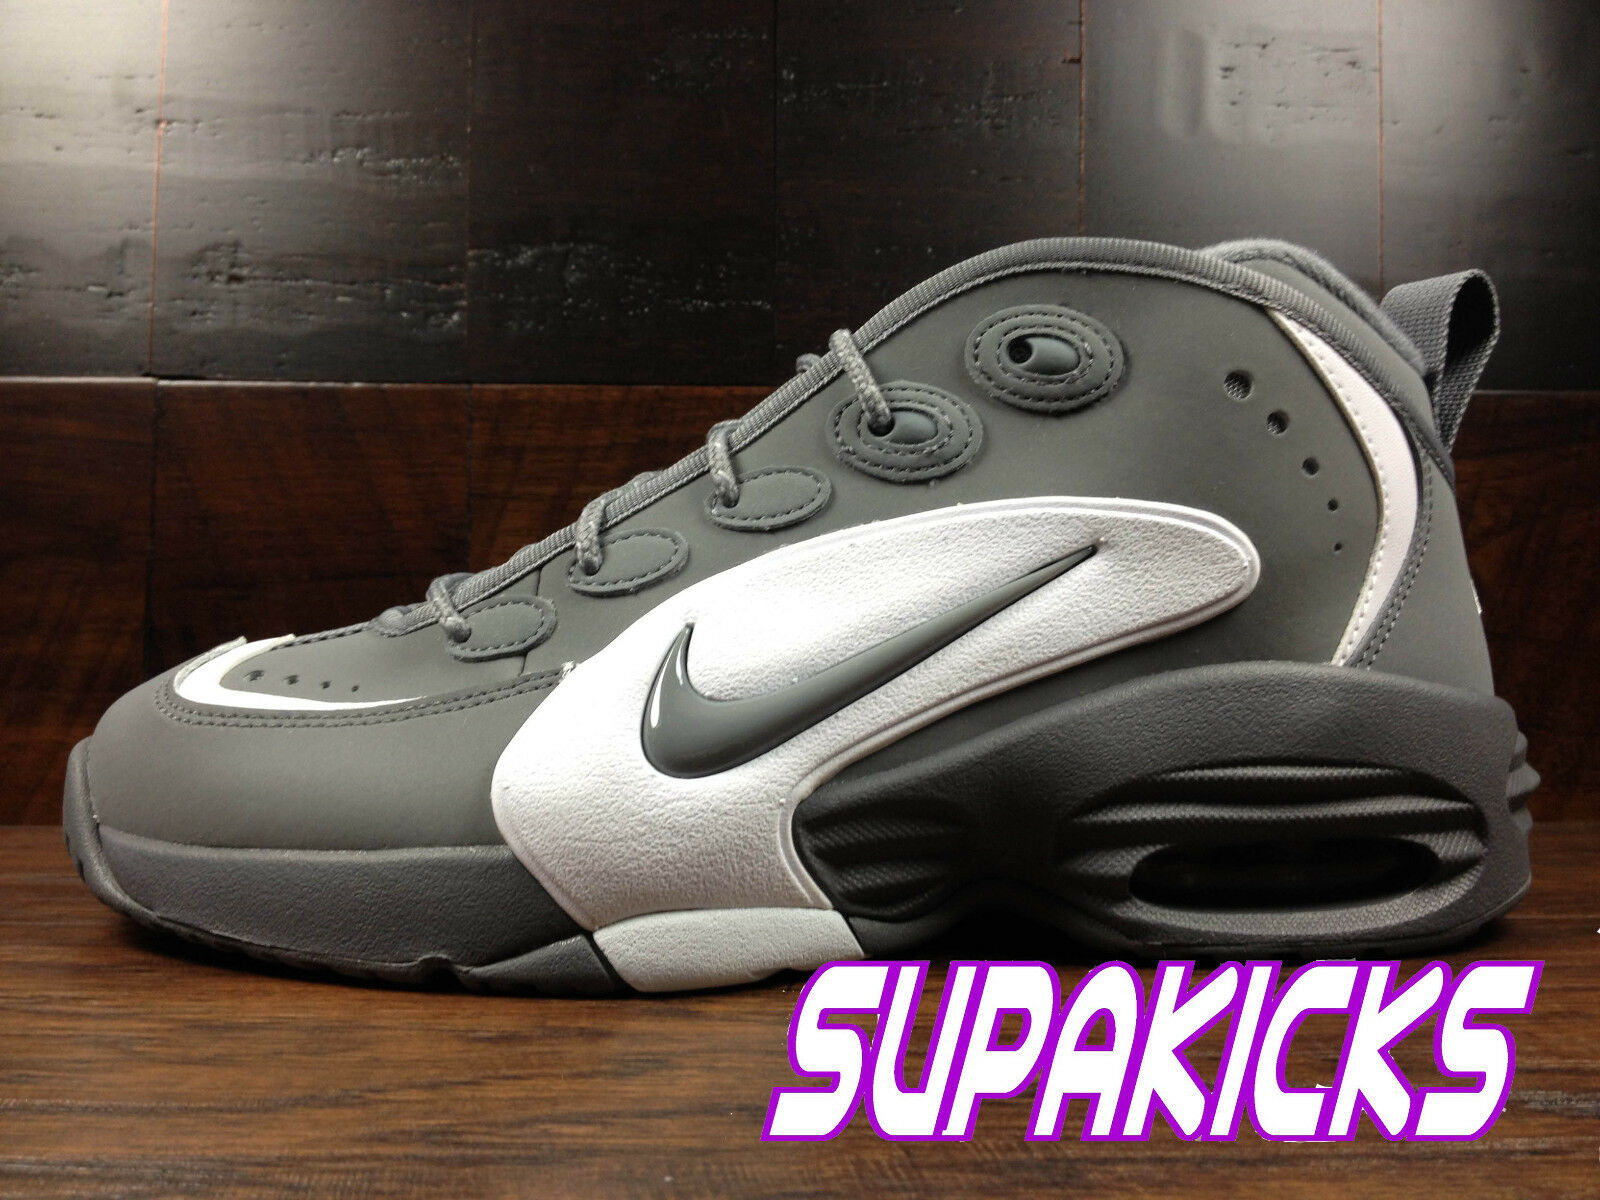 Nike Air Way Up Pippen Rodman NSW Hommes 8-13